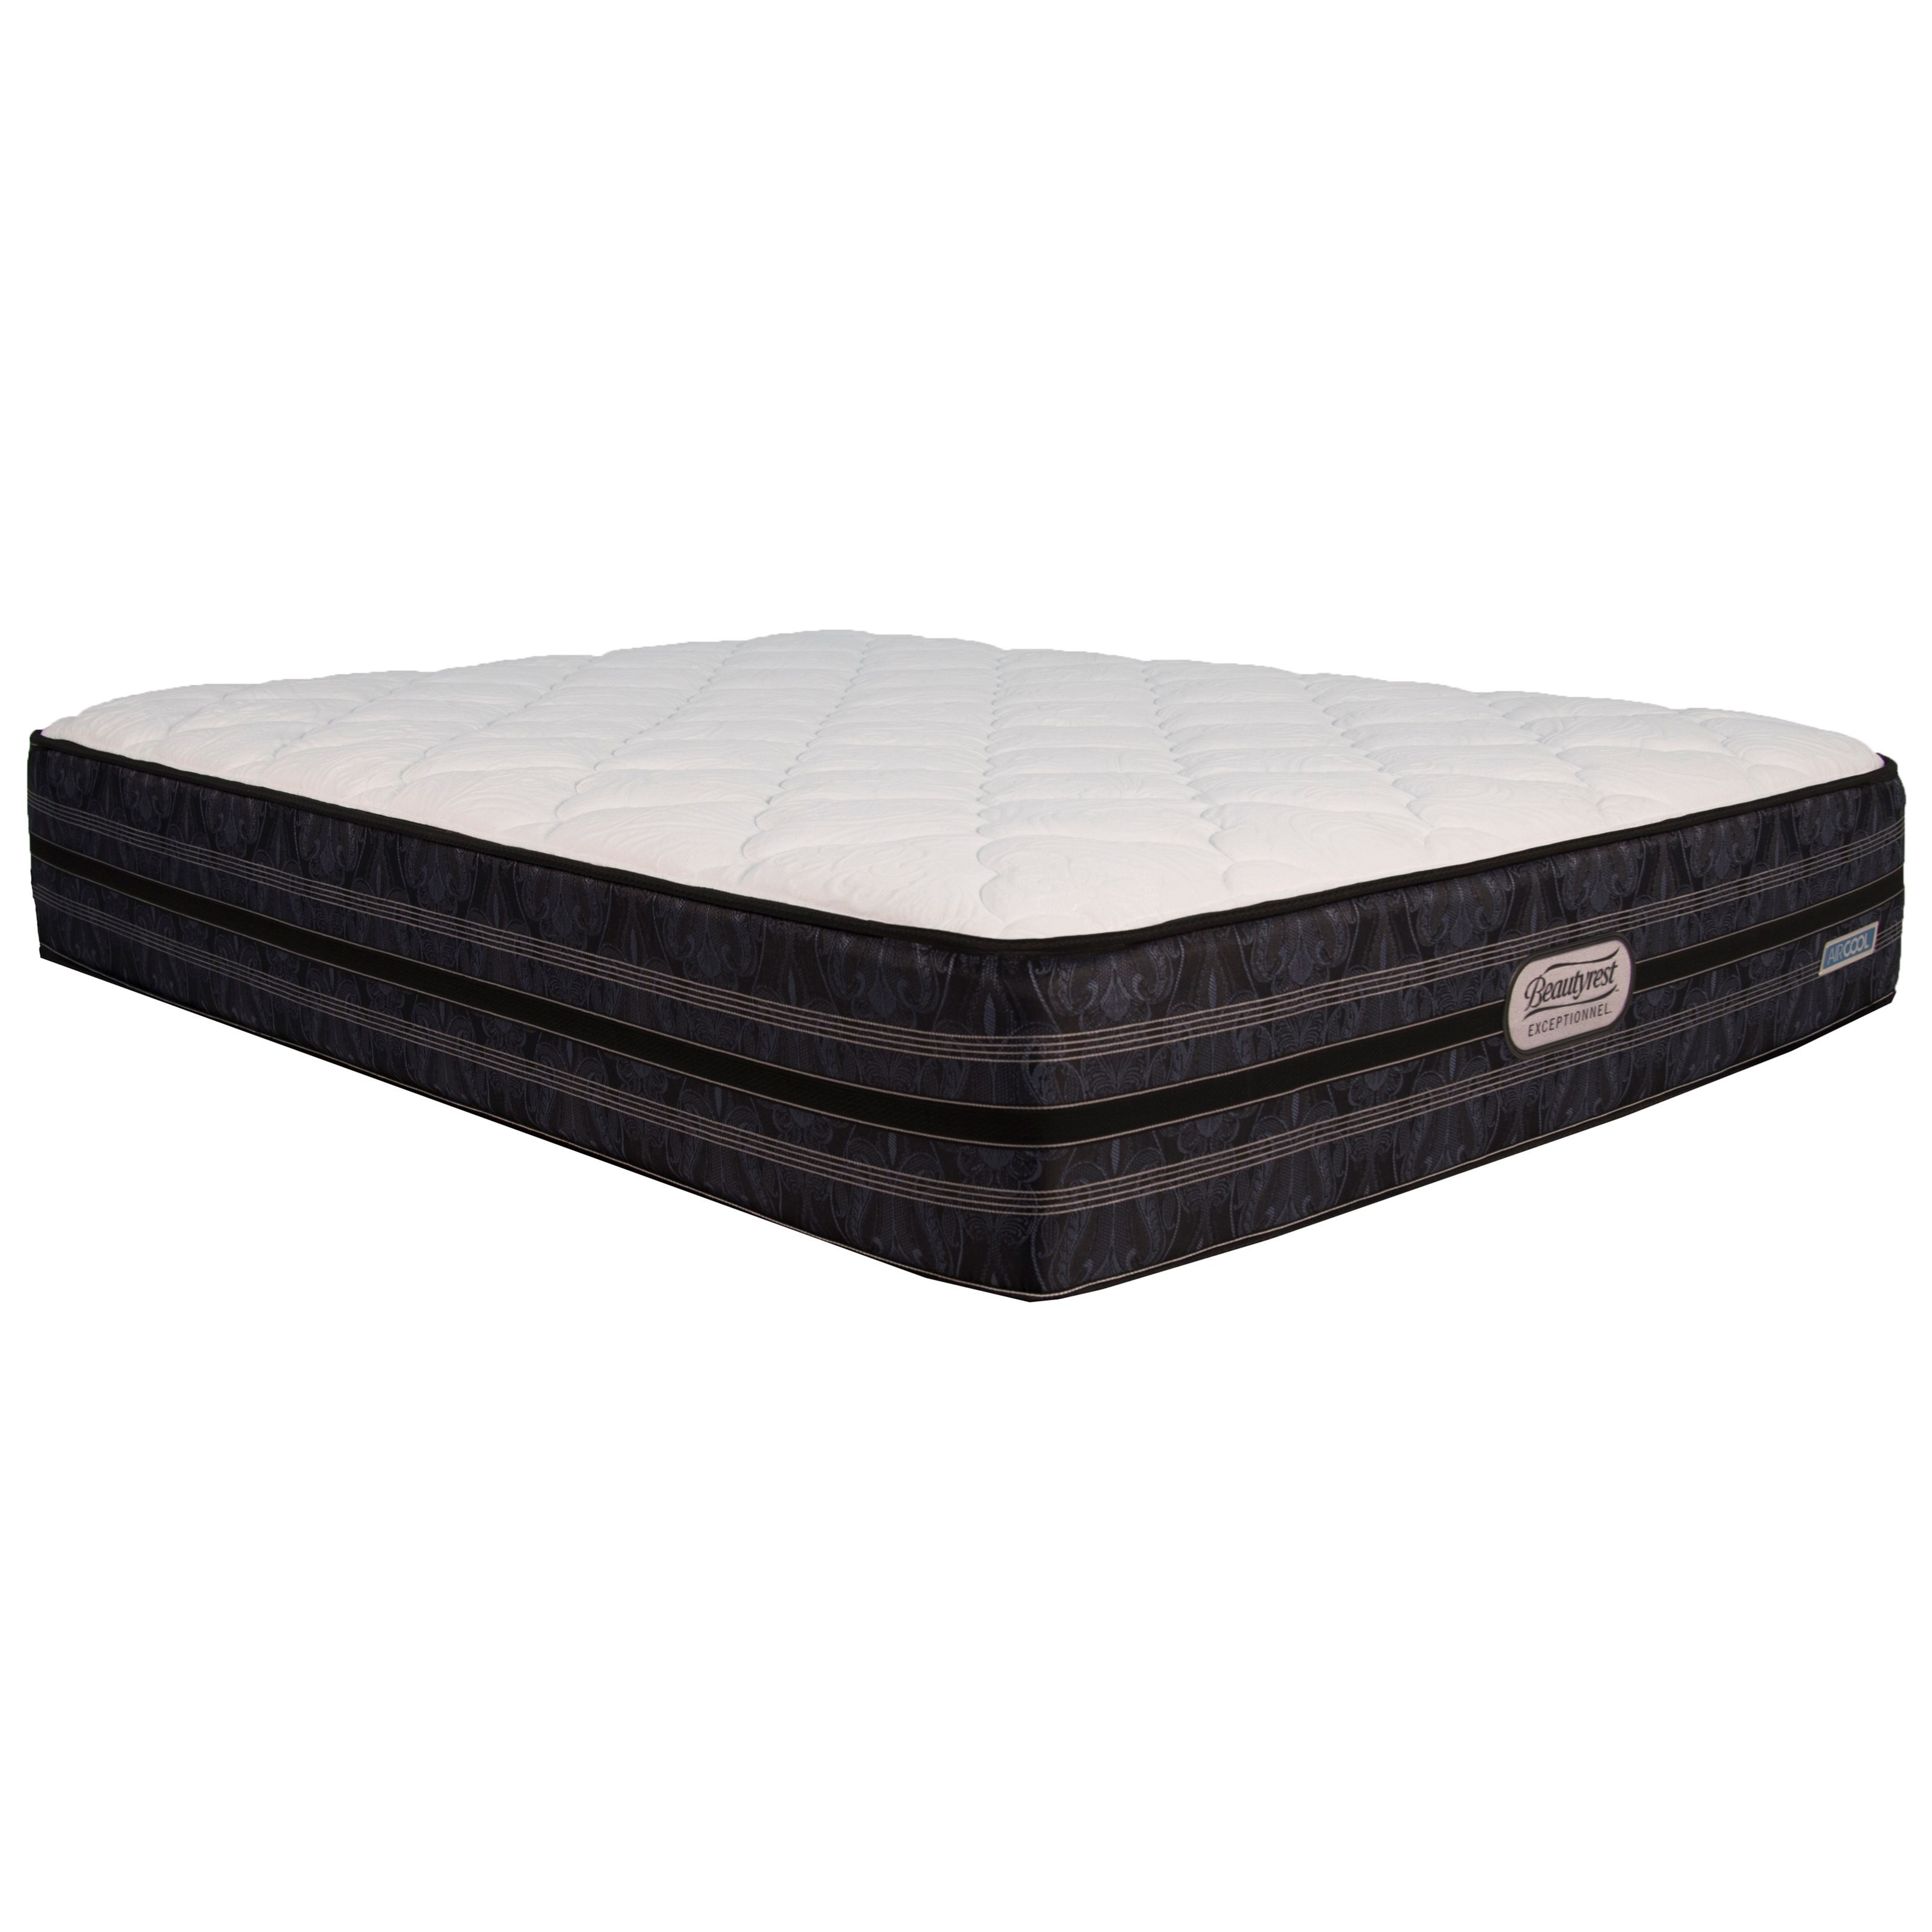 King Firm Coil on Coil Mattress